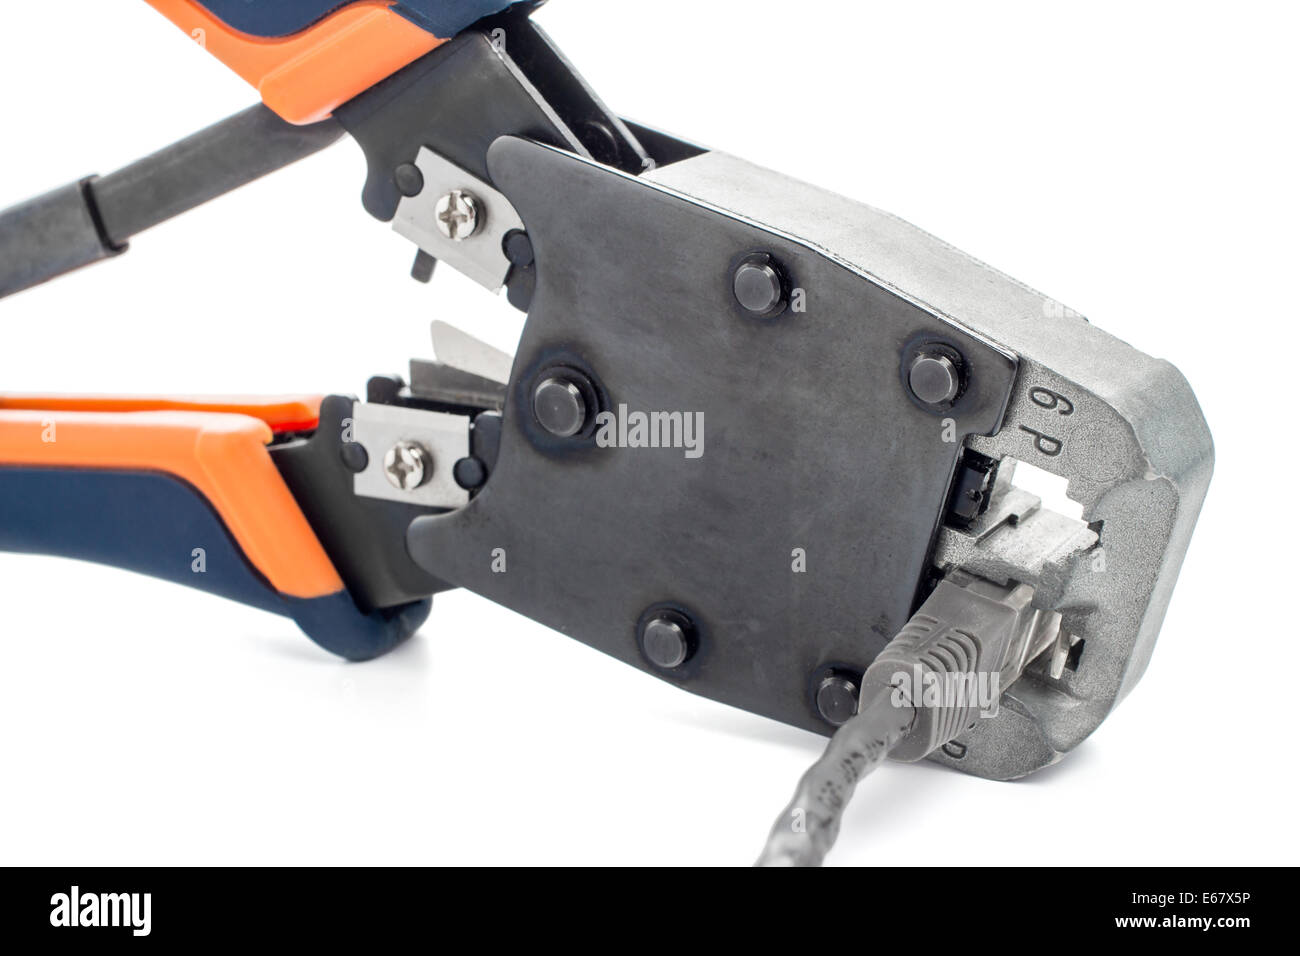 Crimping Pliers Stock Photos & Crimping Pliers Stock Images - Alamy